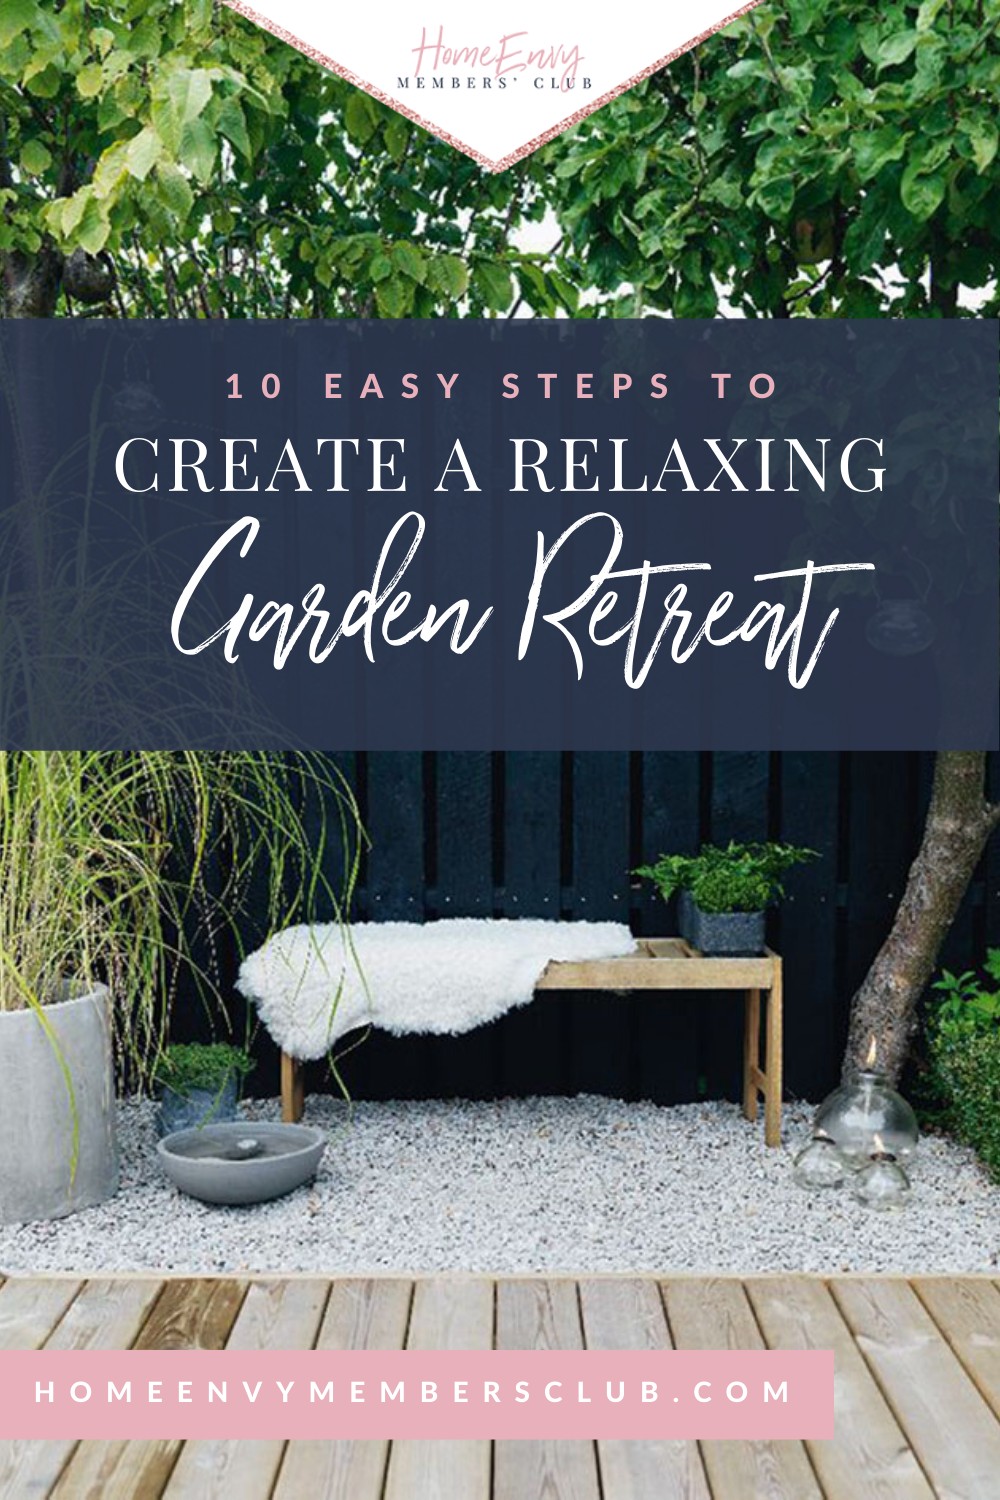 How To Create a Relaxing Garden Retreat | The HomeEnvy Members Club